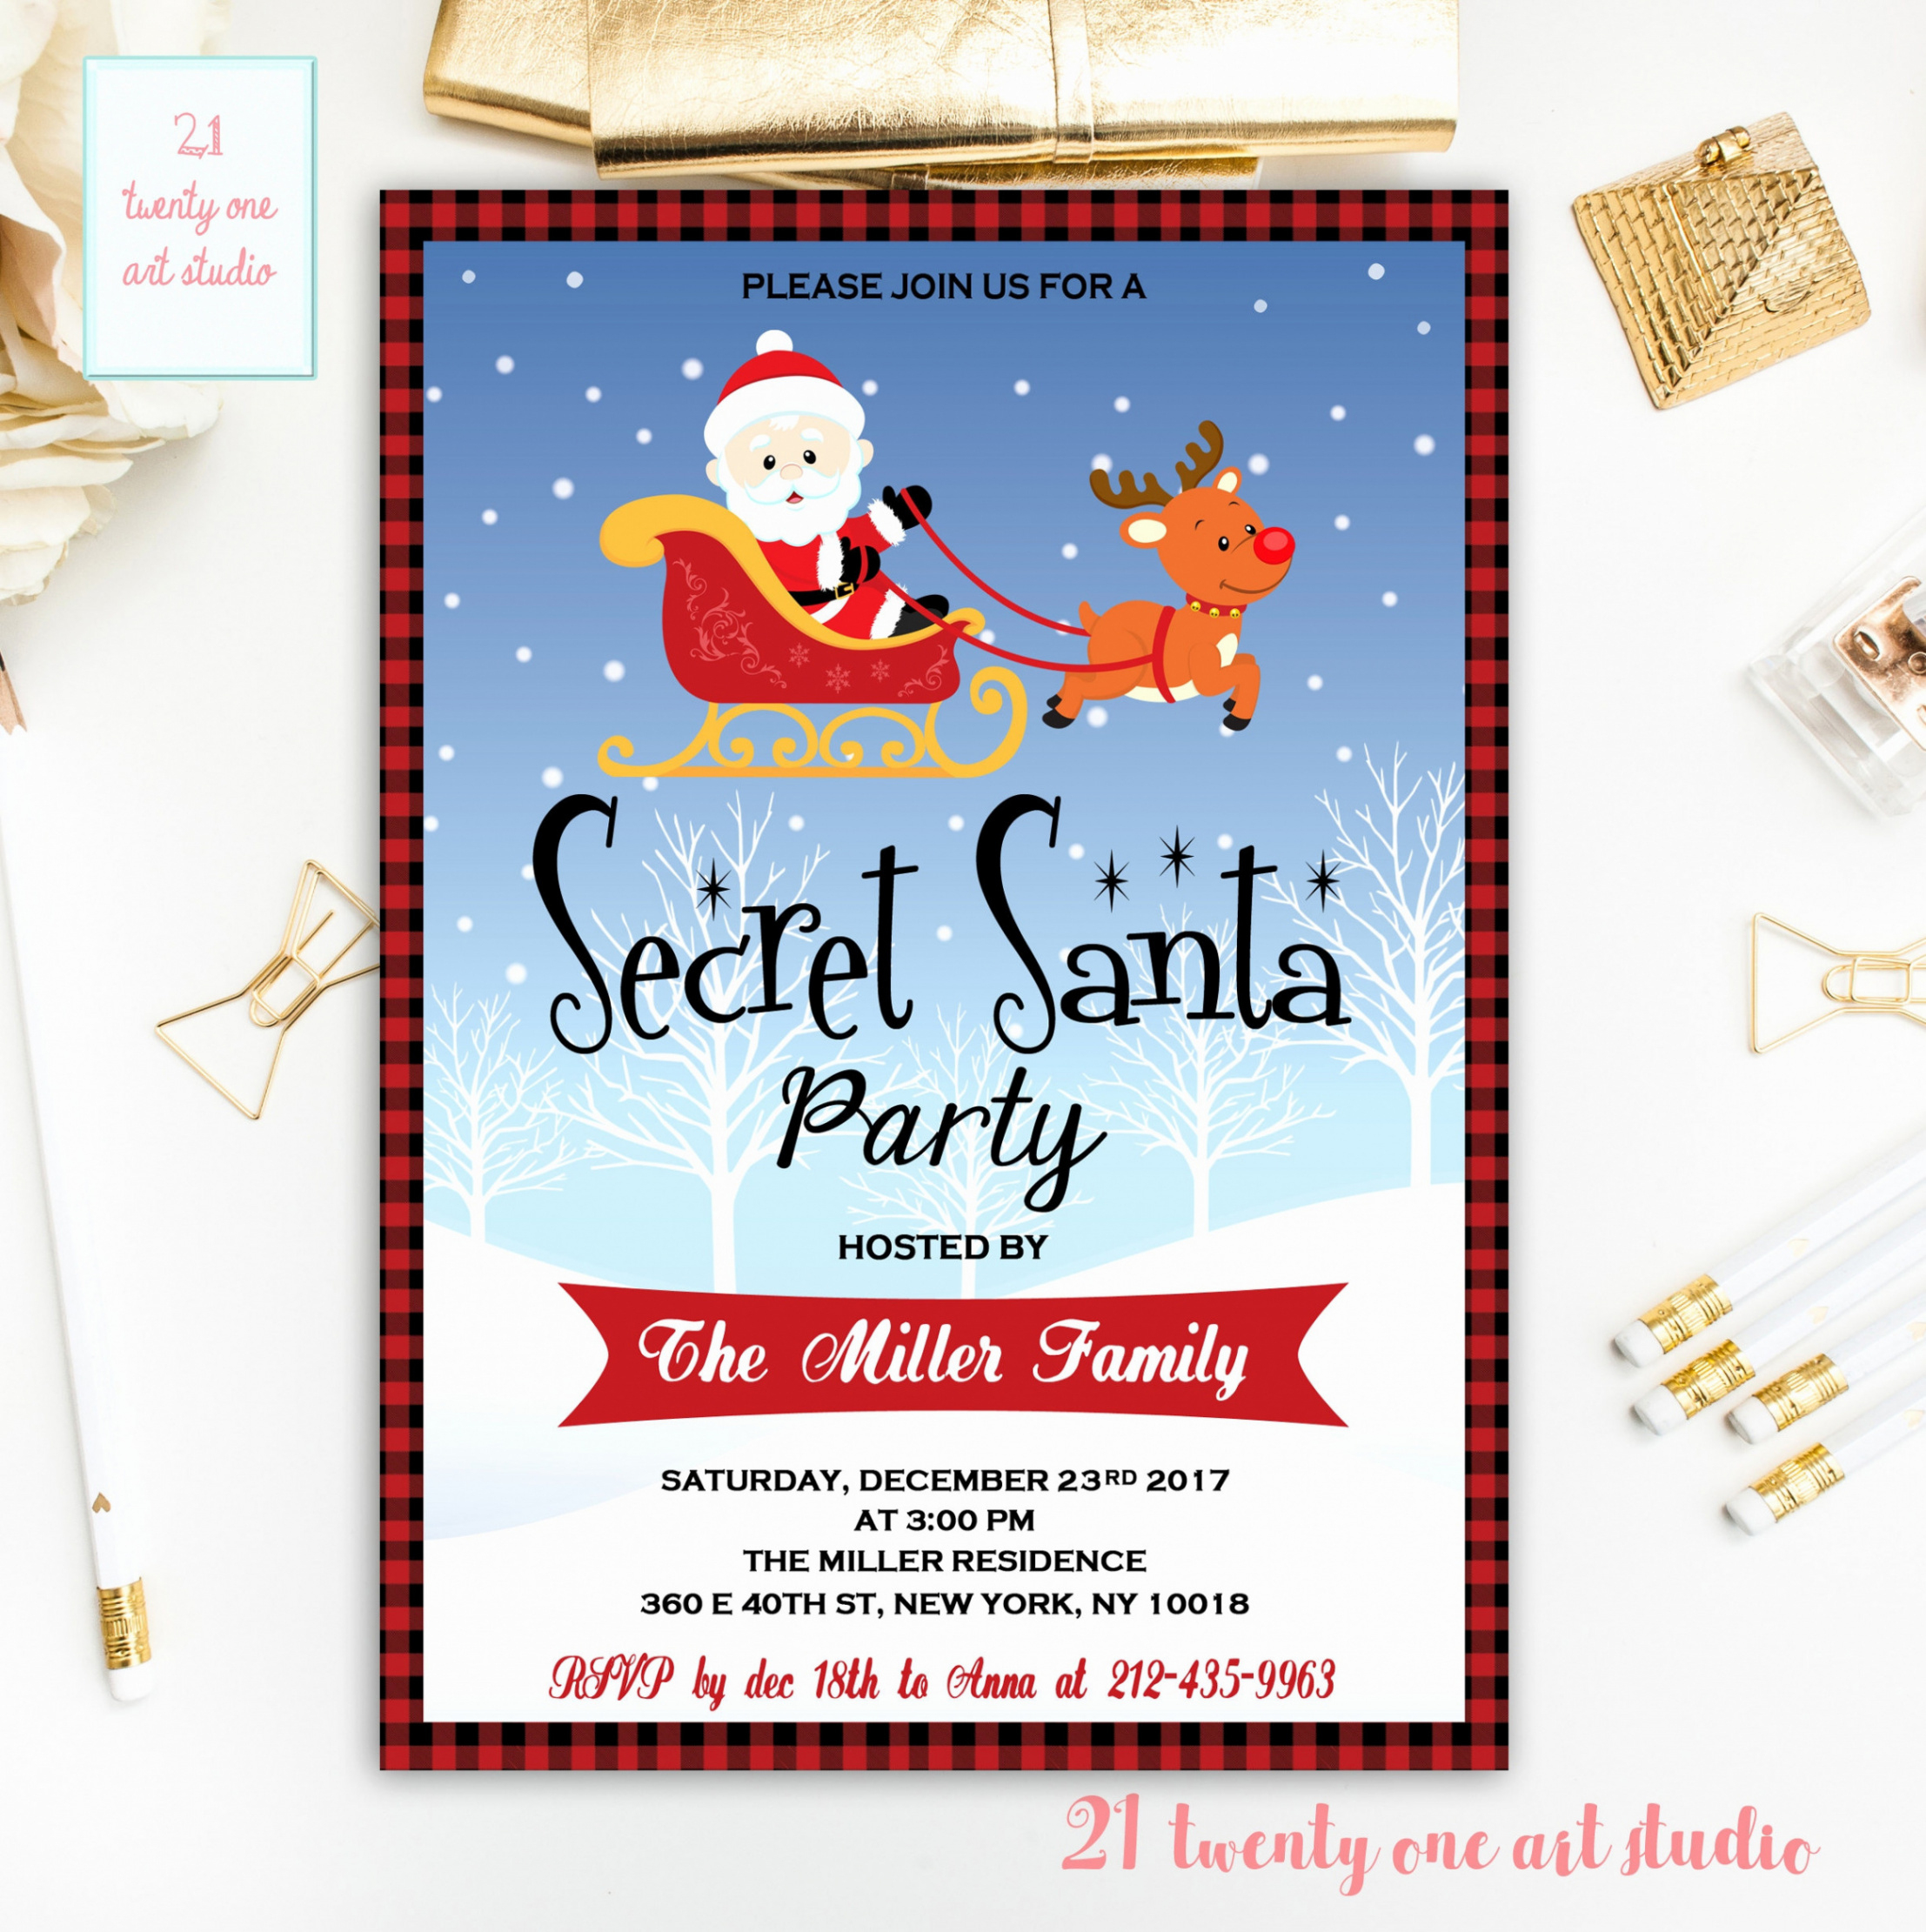 Free Printable 70Th Birthday Party Invitations Luxury Free Printable - Free Printable 70Th Birthday Party Invitations